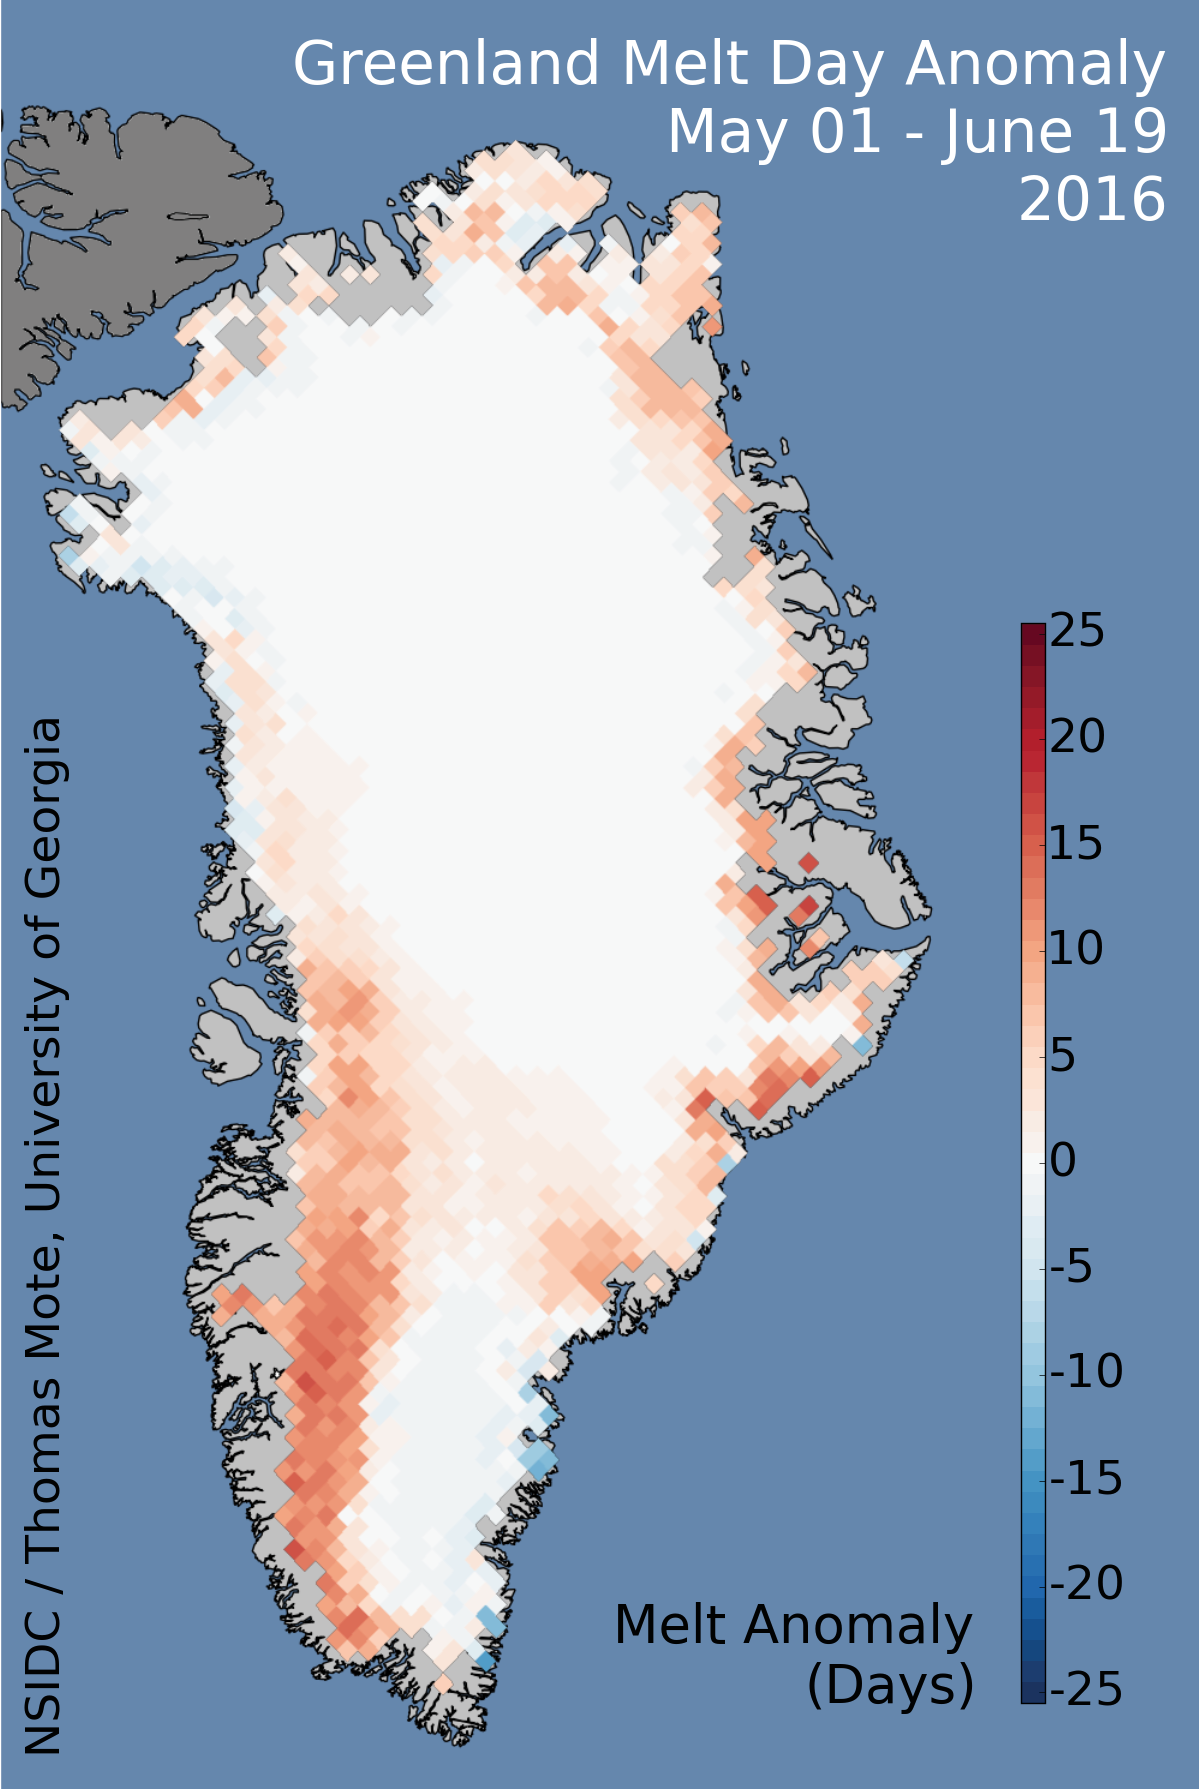 Map of Greenland colored by the difference in the number of days ice was melting in 2016 compared to the 1981-2010 average. Reds signify above average numbers of melt days in 2016. It's normal for the Greenland ice sheet to melt a little every summer when temperatures rise above freezing, but during the last few years there have been many more days that the ice is actively melting. Source: http://nsidc.org/greenland-today/